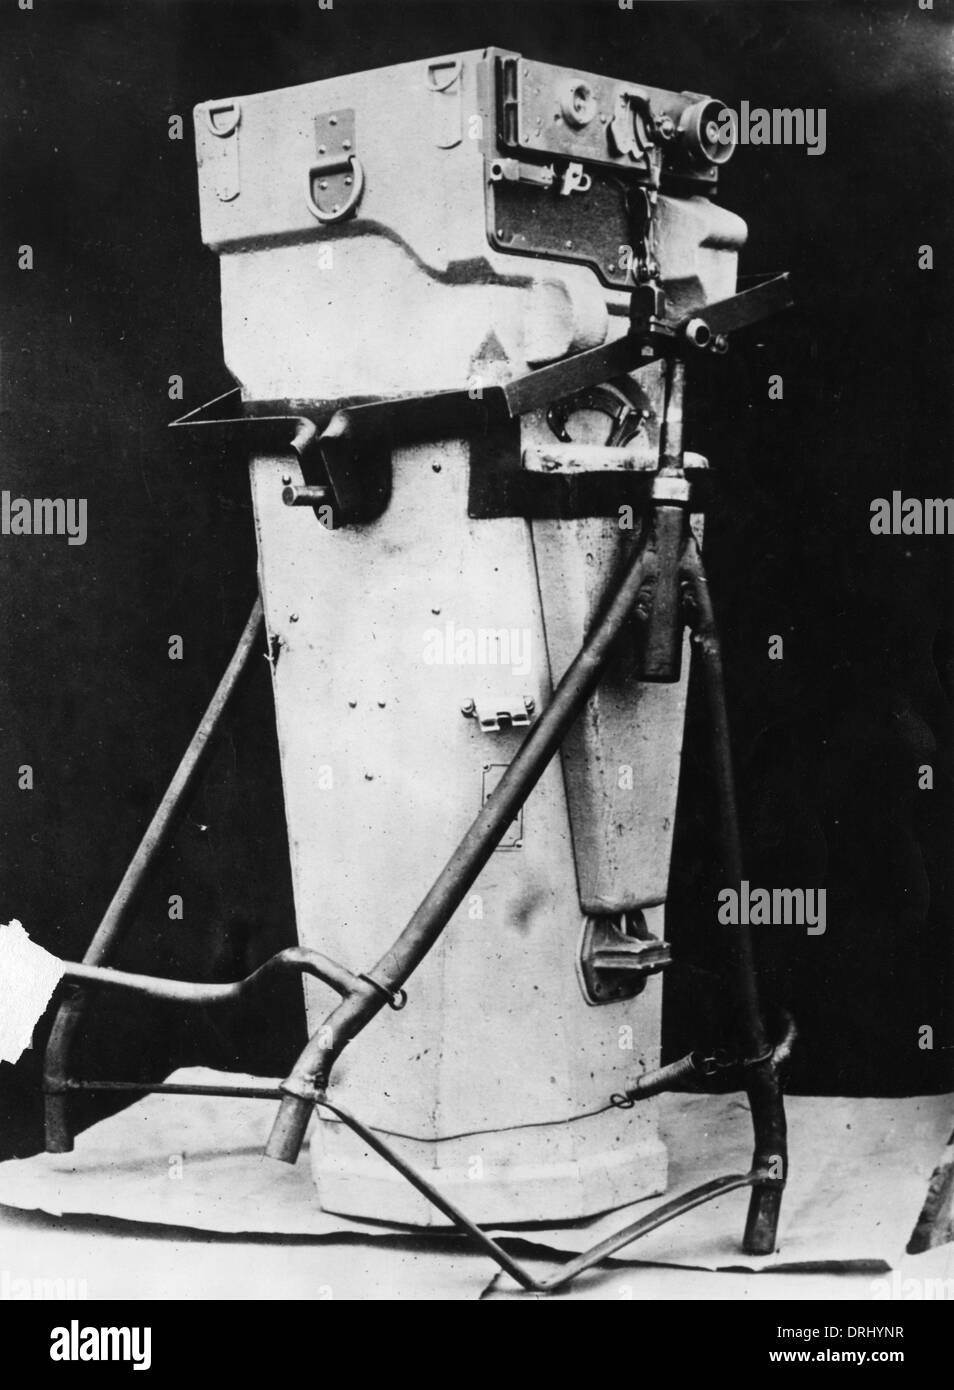 Camera used for air reconnaissance, WW1 - Stock Image